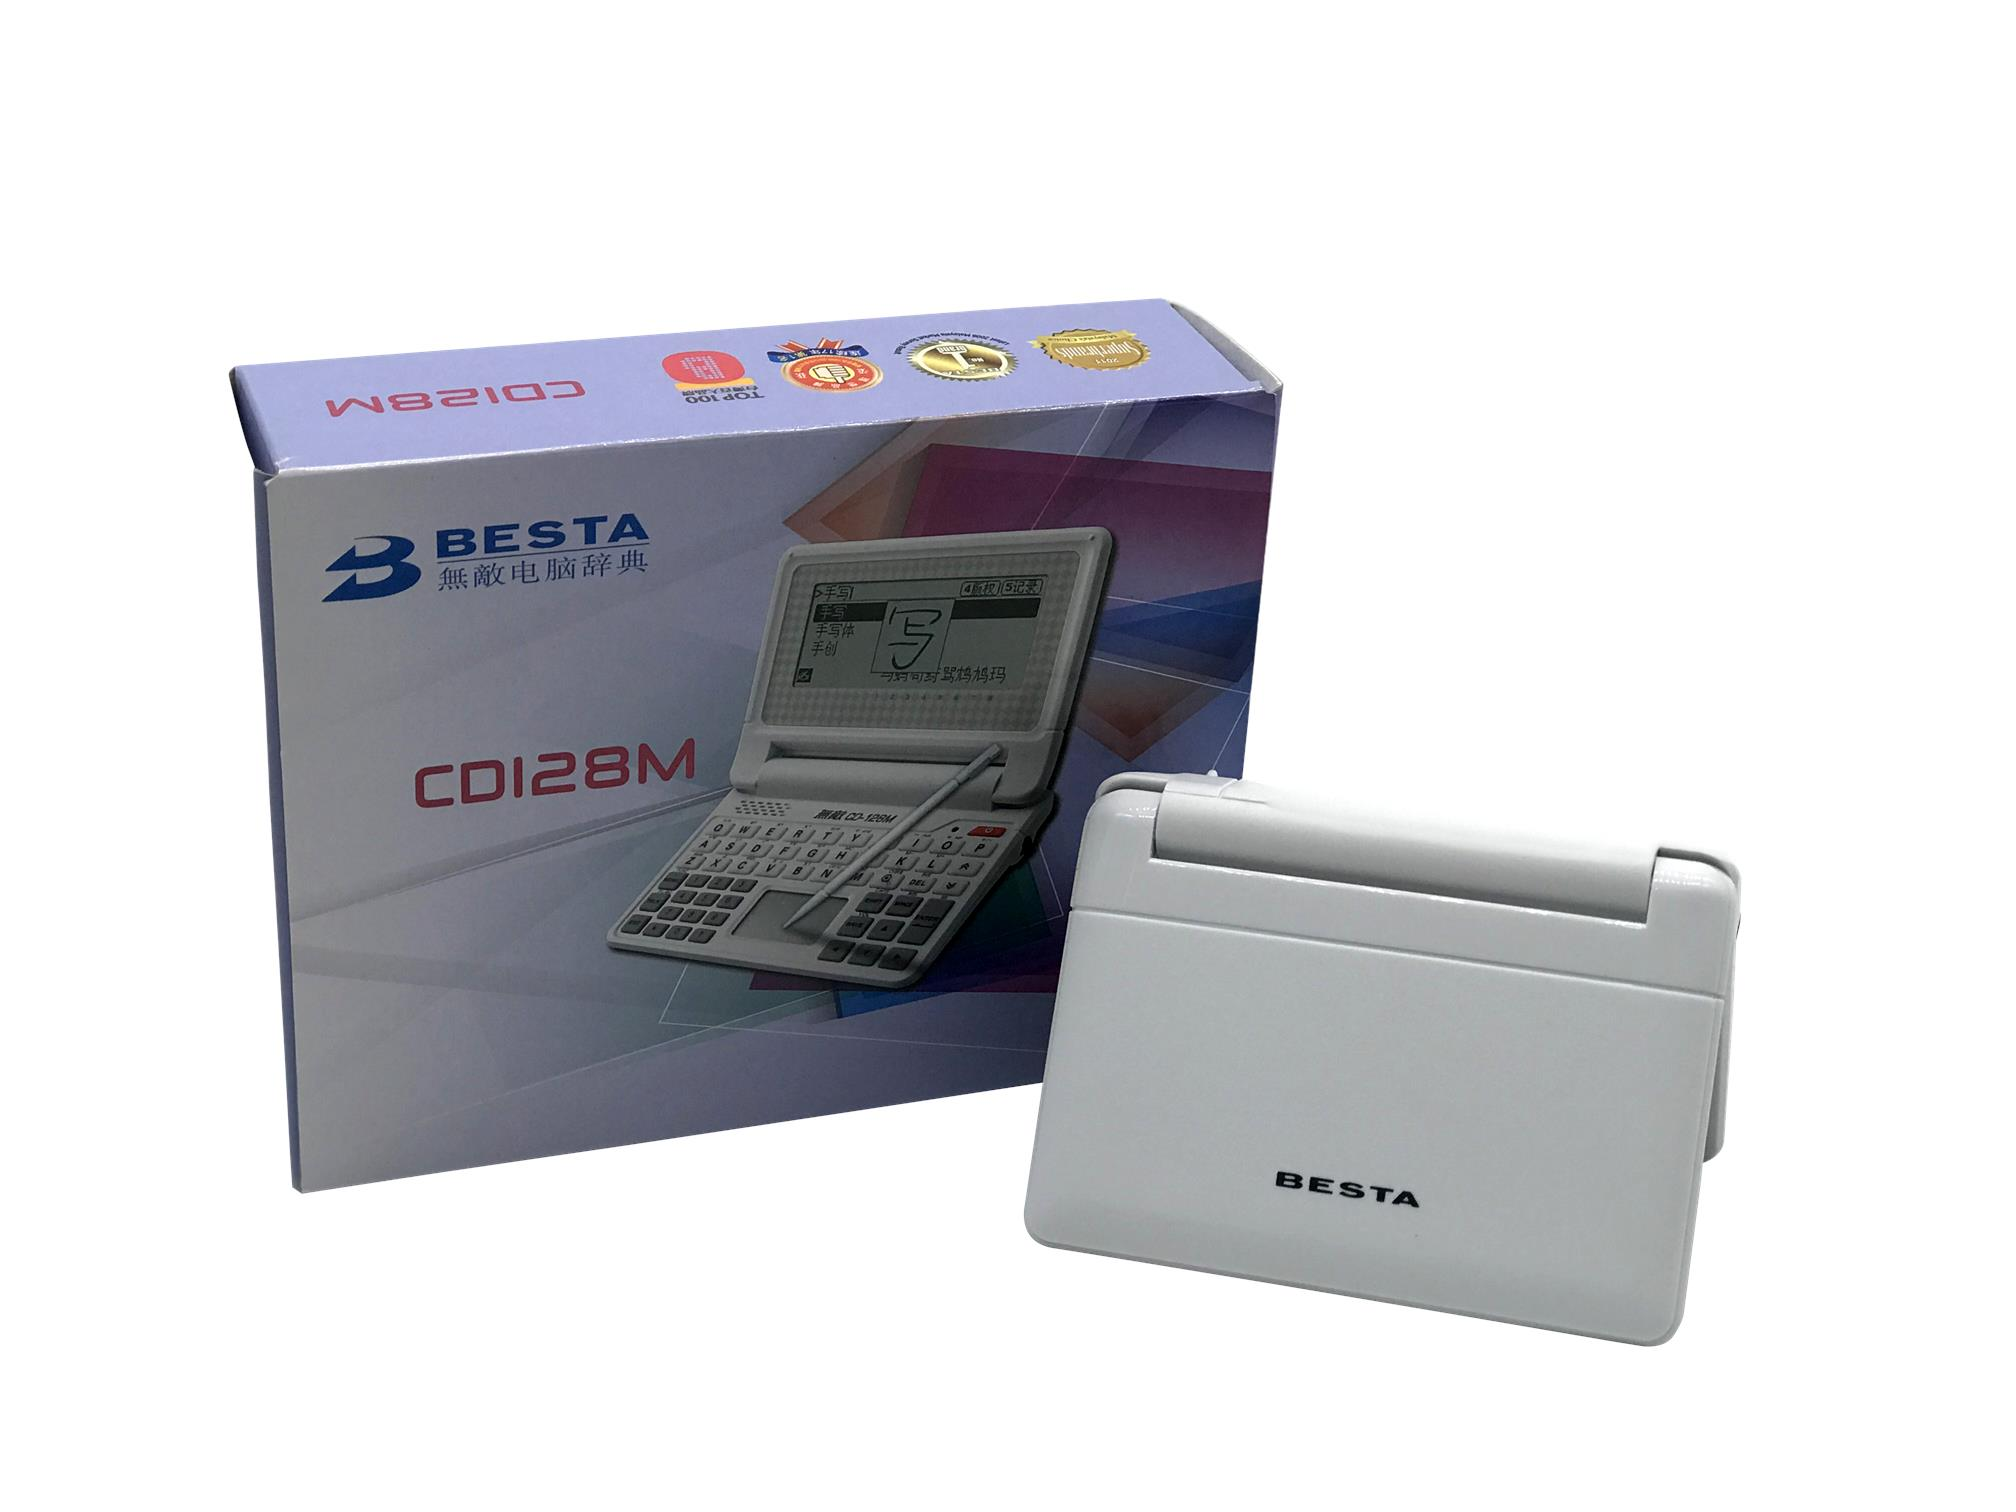 Besta Dictionary CD128M